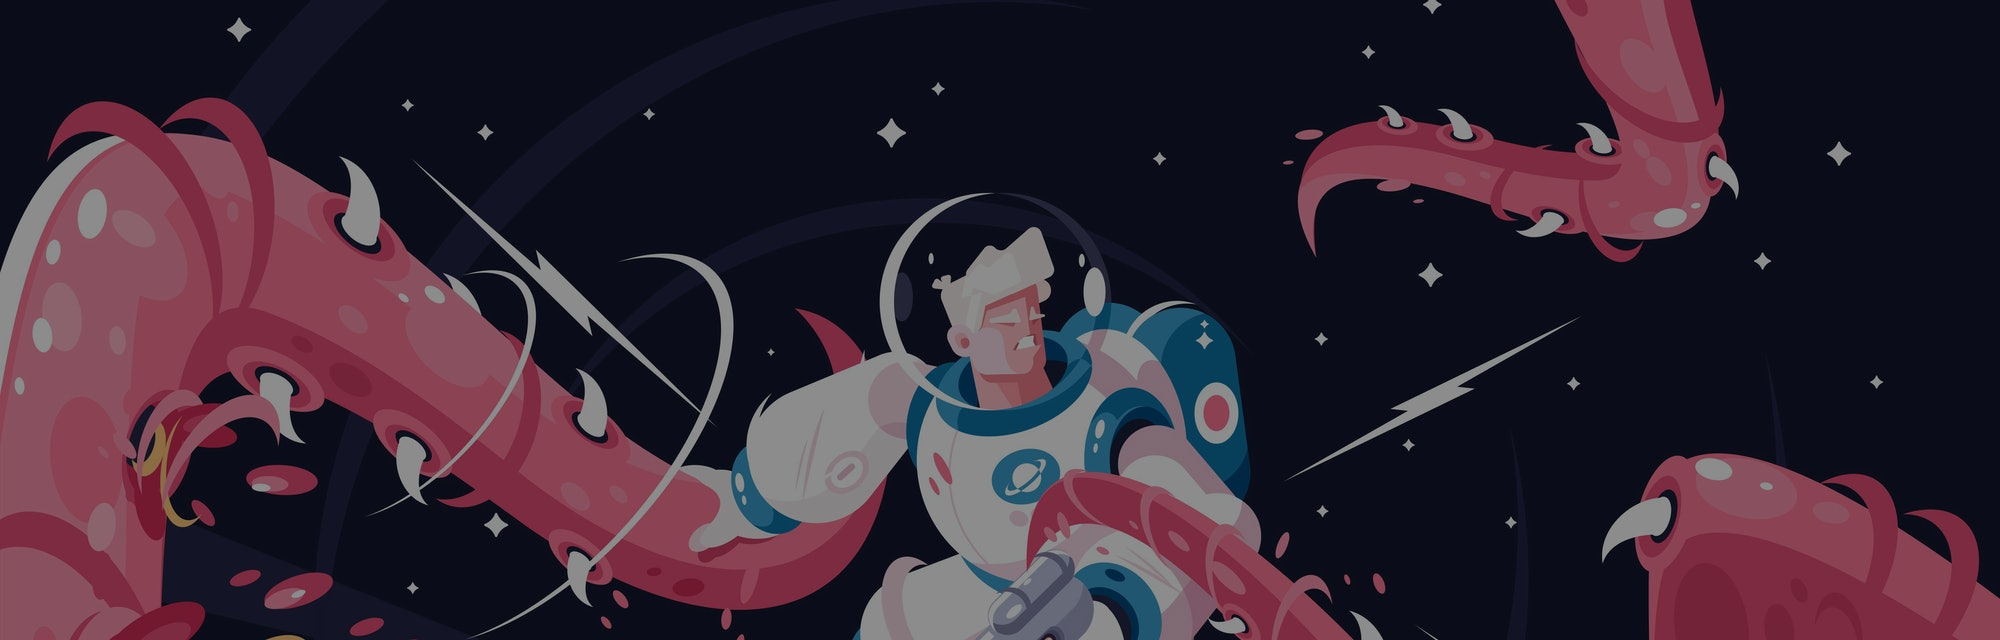 Young astronaut vs dangerous alien tentacles. Astronaut with weapon fighting monster at cosmos vector illustration. Stars and black night on background flat style concept